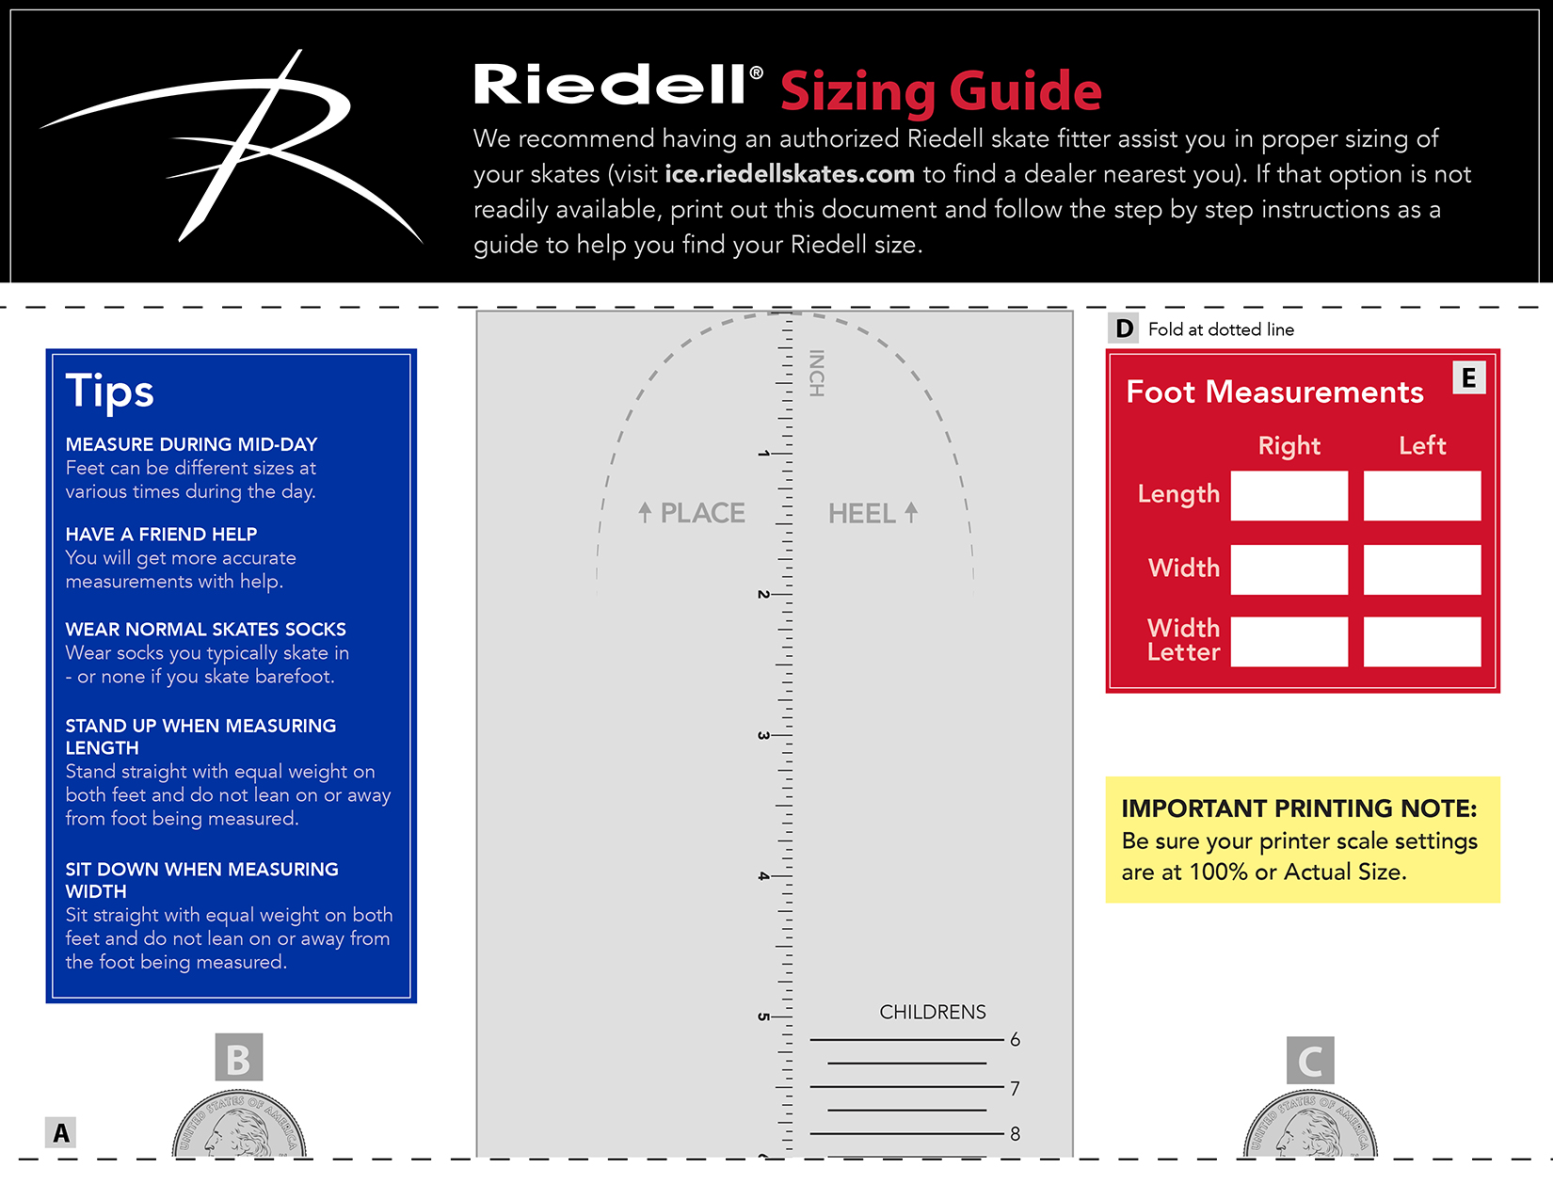 Click to download Riedell's Ice Skate Sizing Guide.